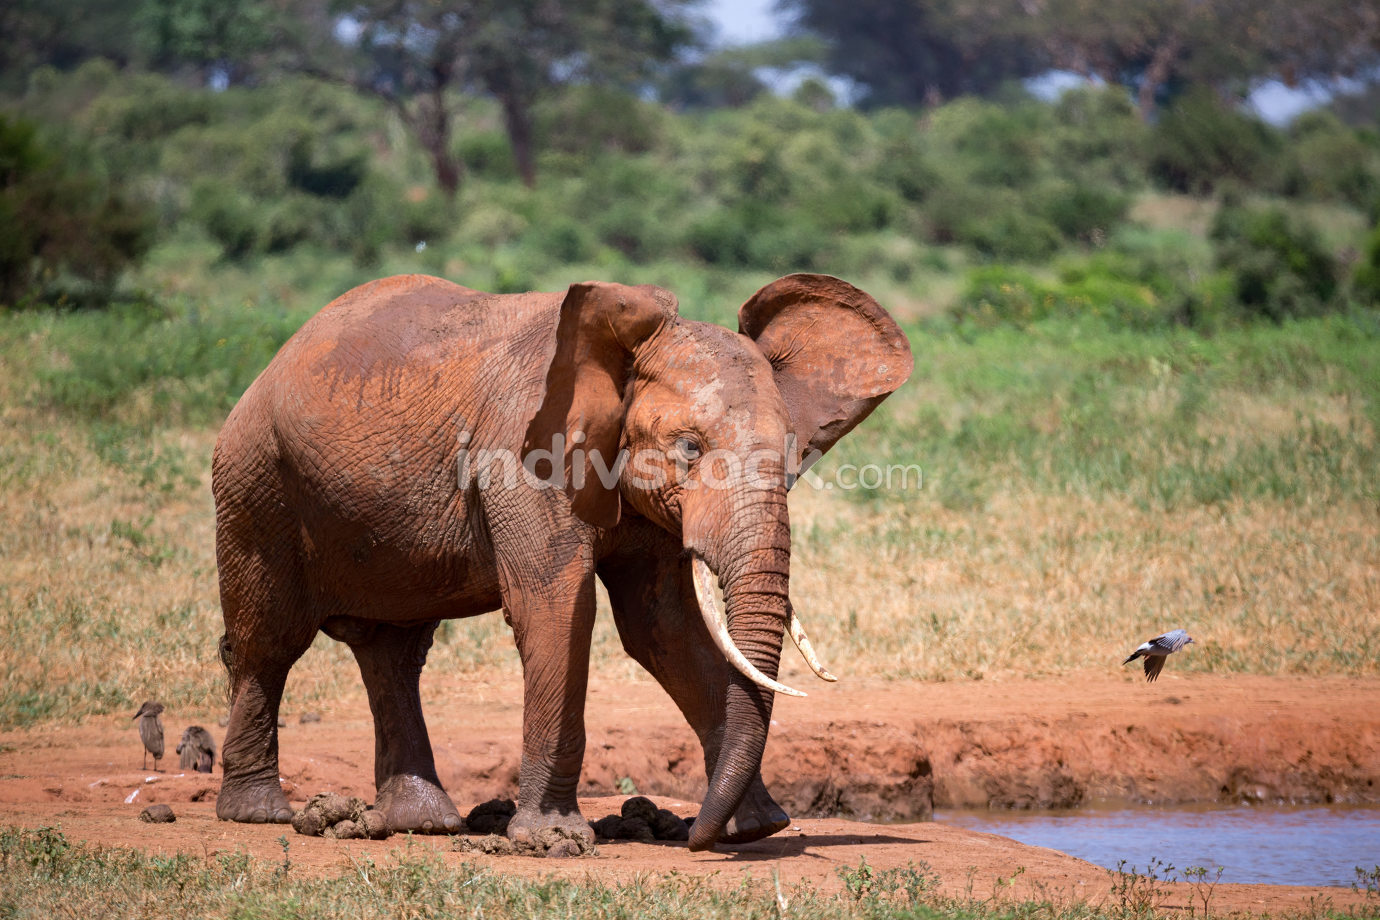 Elephants in the savannah near a water hole